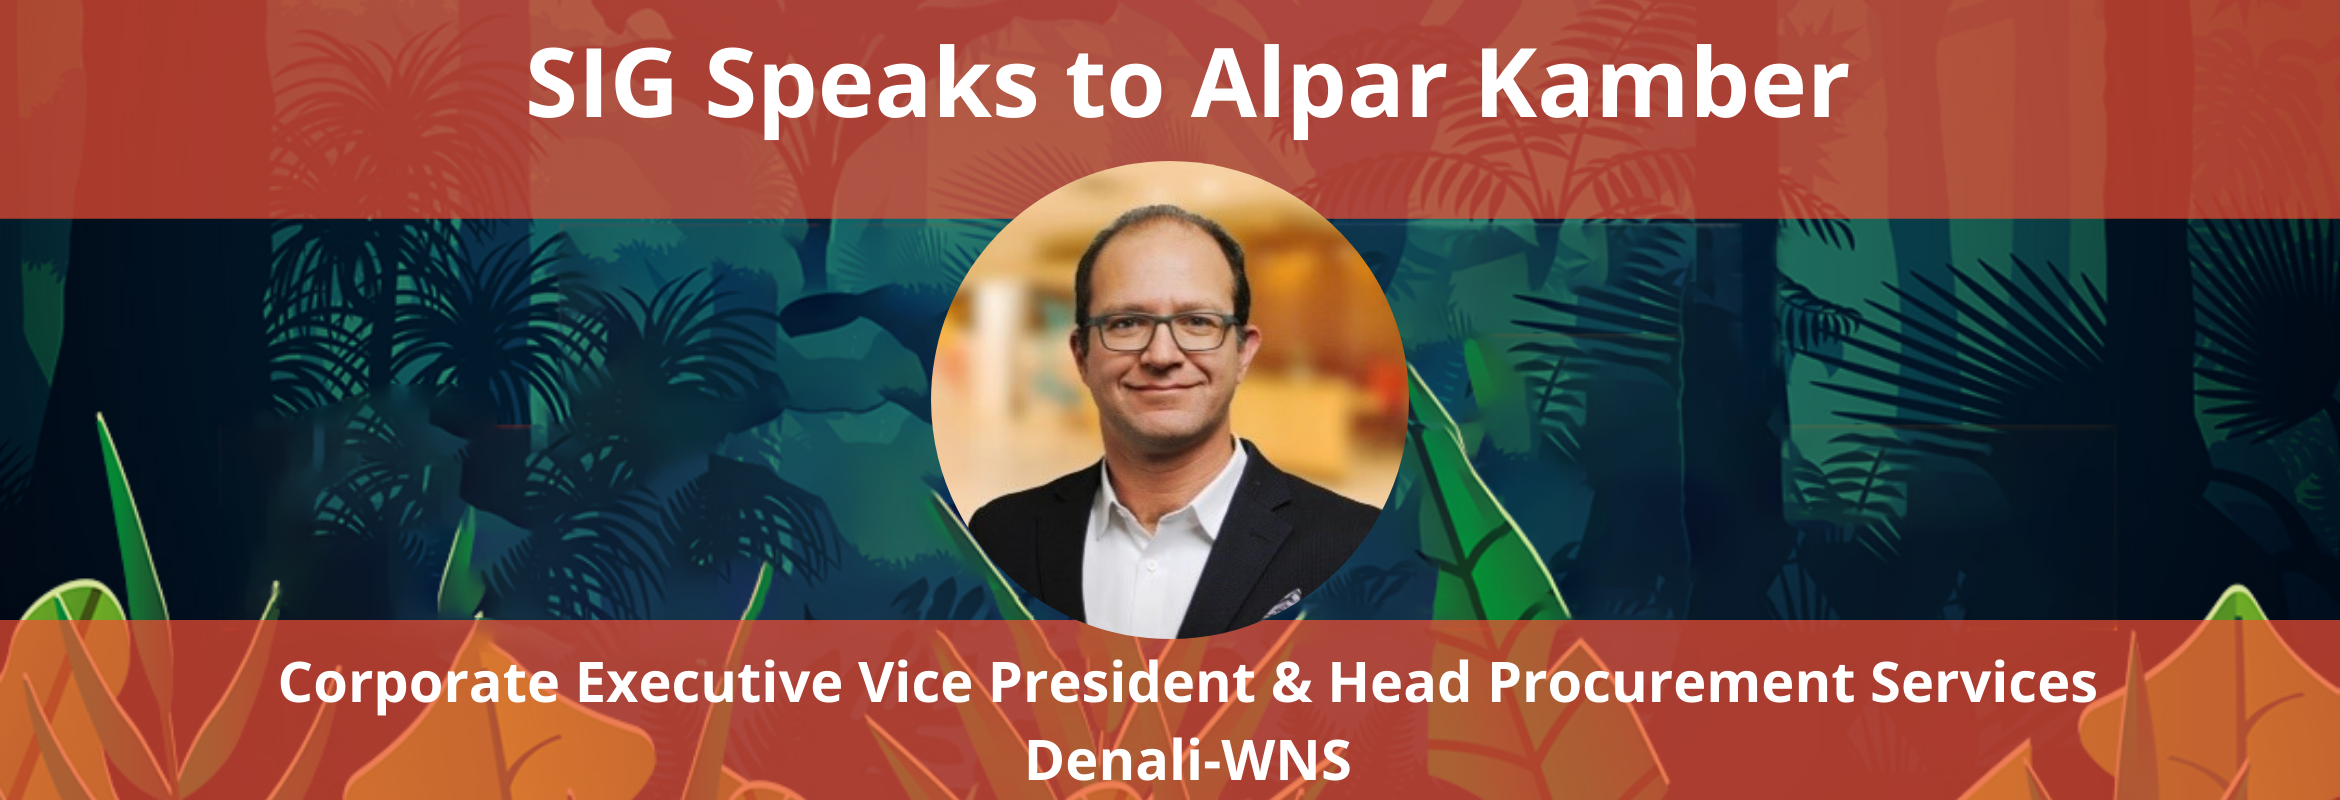 Alpar Kamber is the Head of Procurement Services at WNS